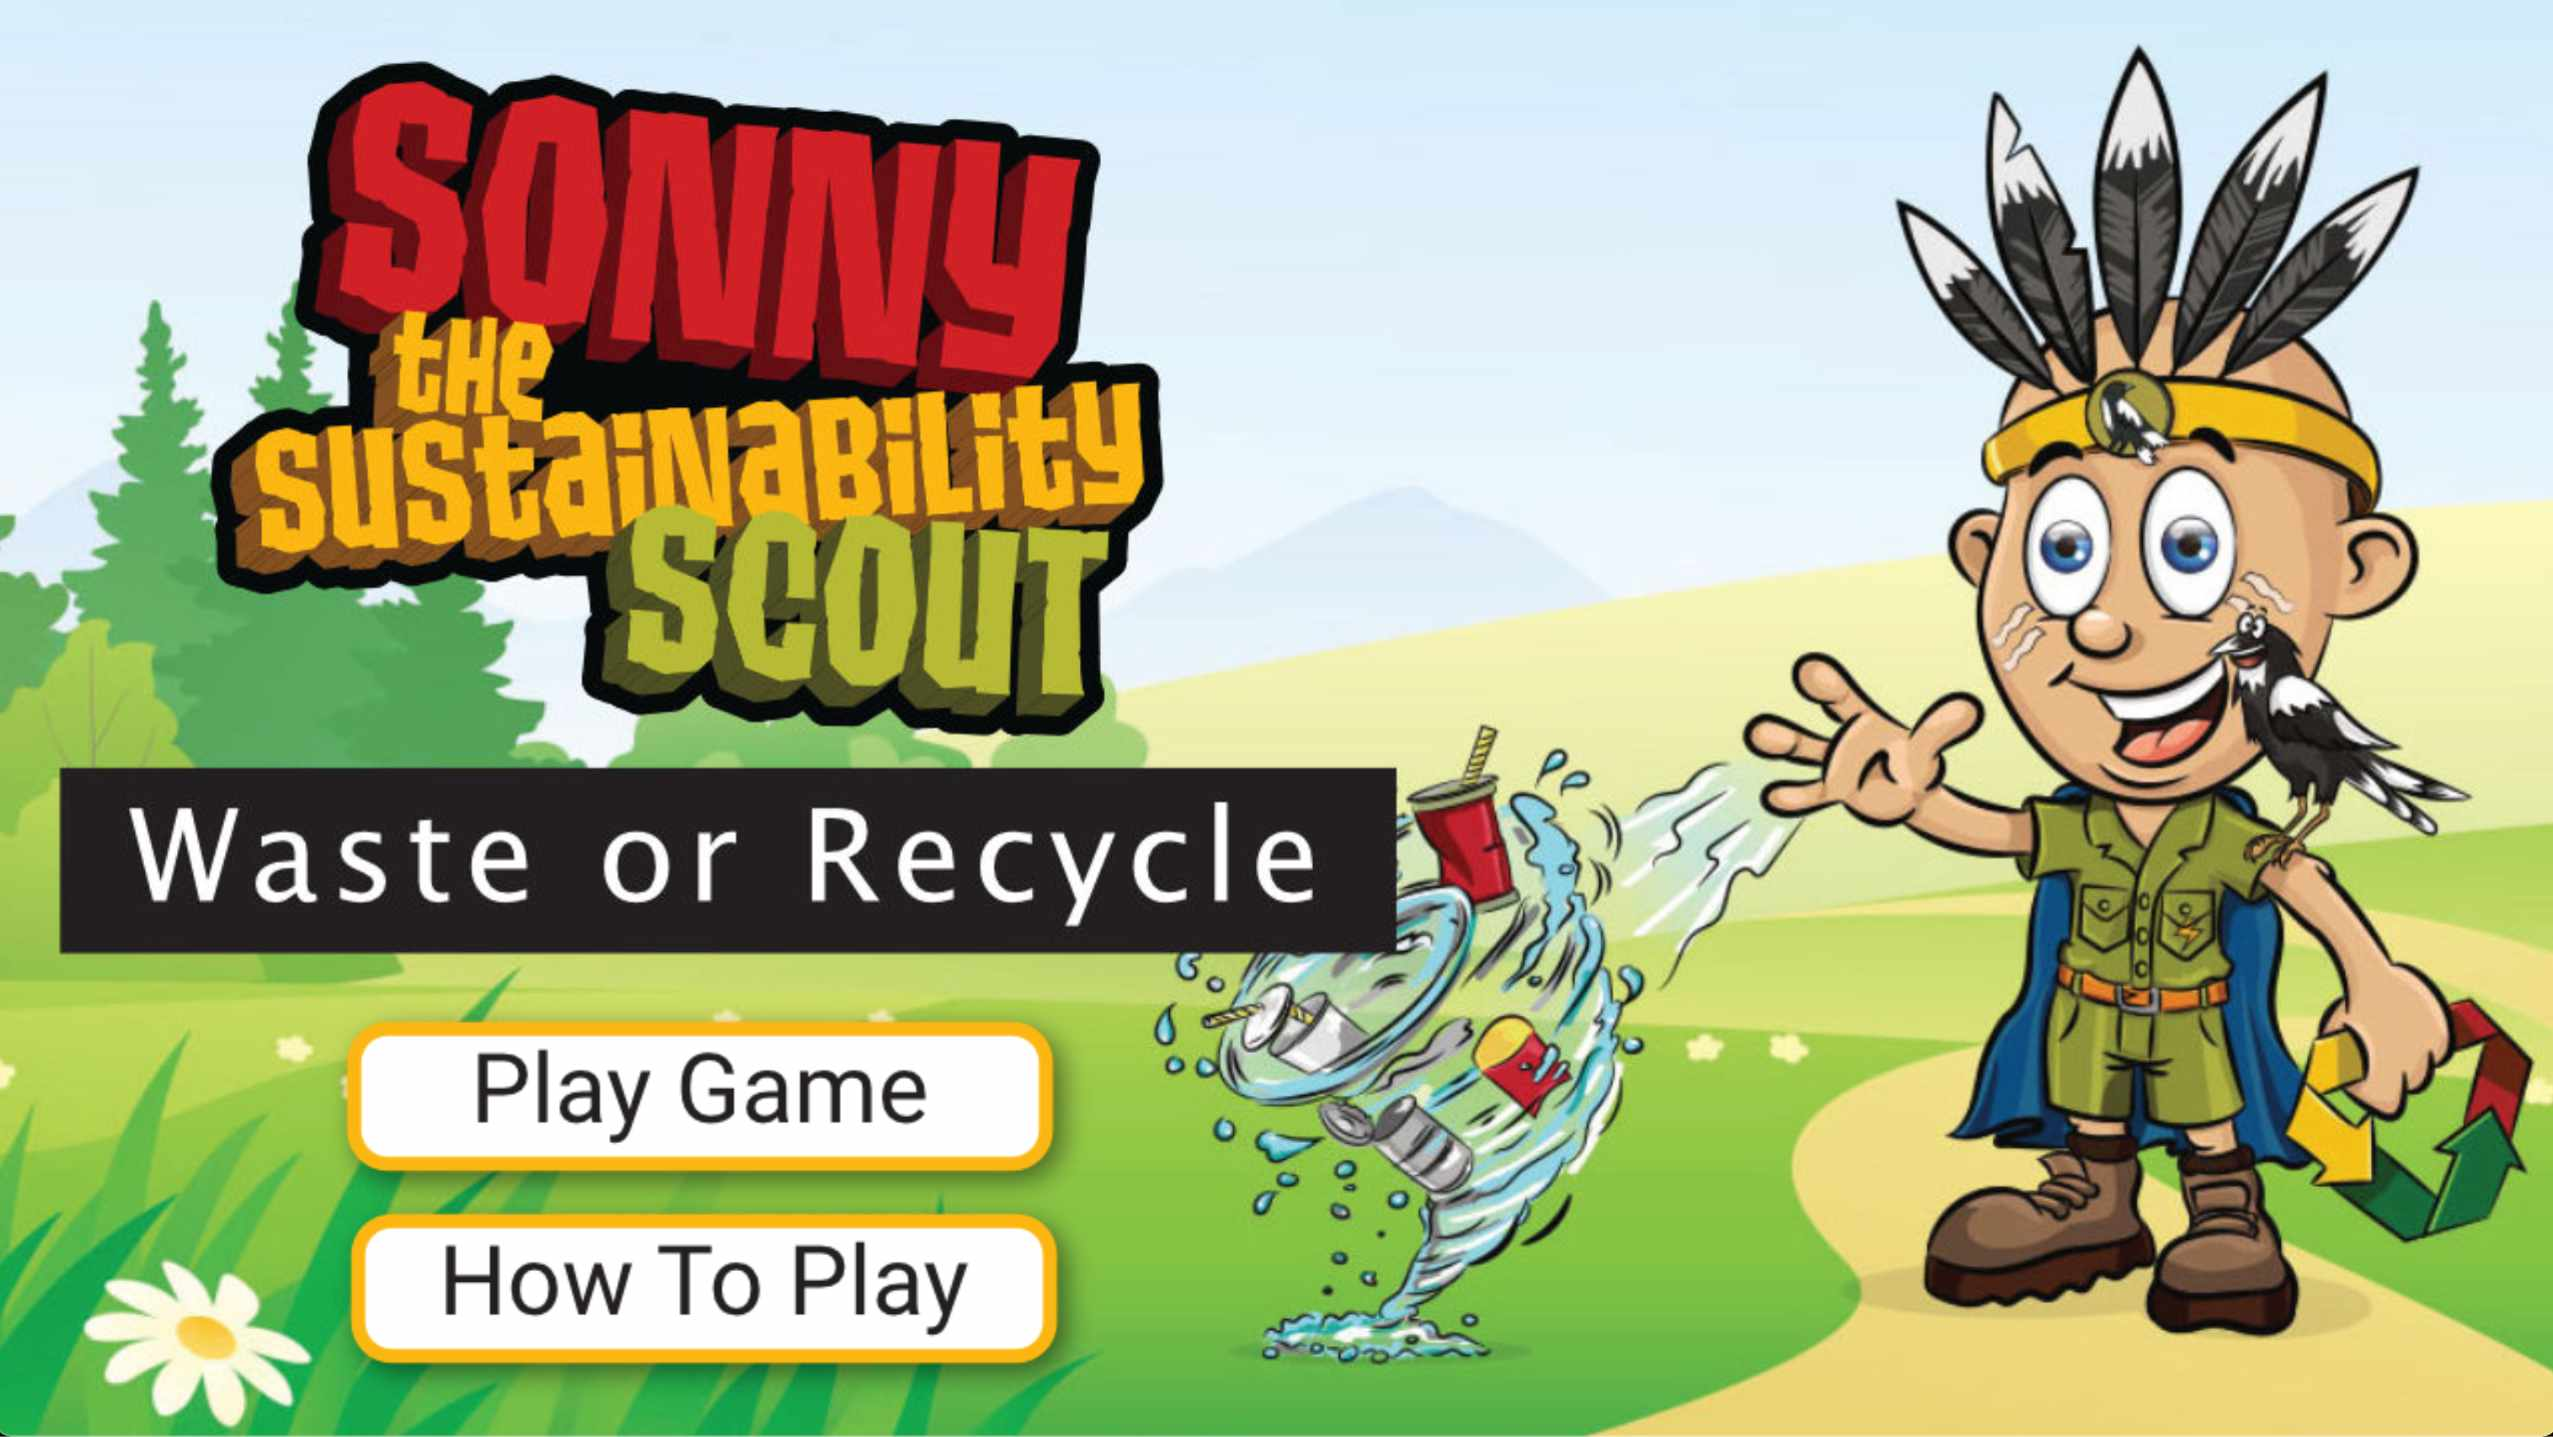 Sonny The Sustainability Scout - Waste and Recycle